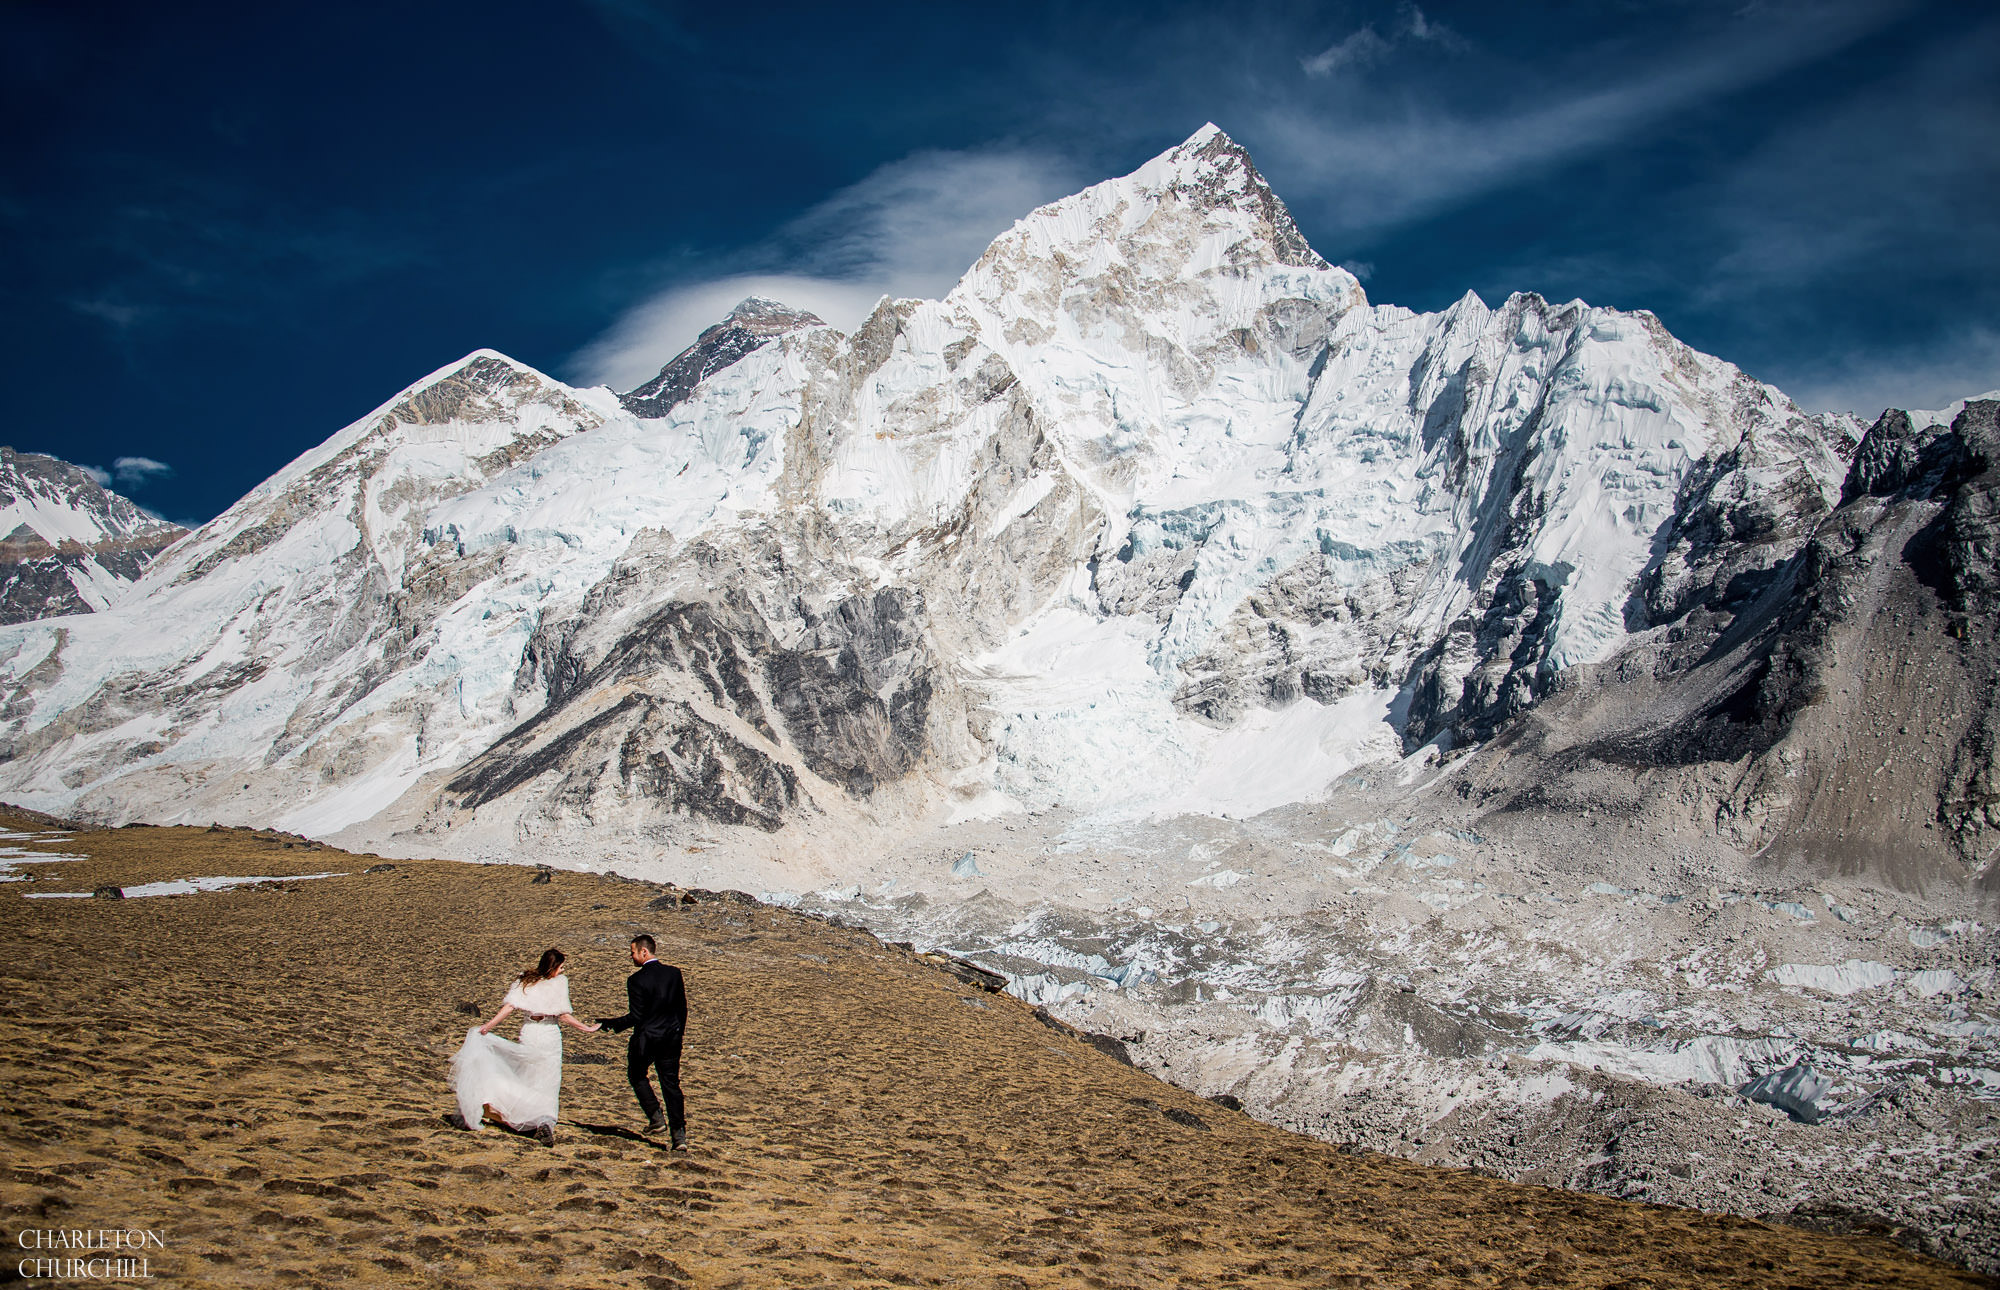 from kala patar, wedding couple gets married with Mt. everest in the background and Nuptse face at 18,000 feet